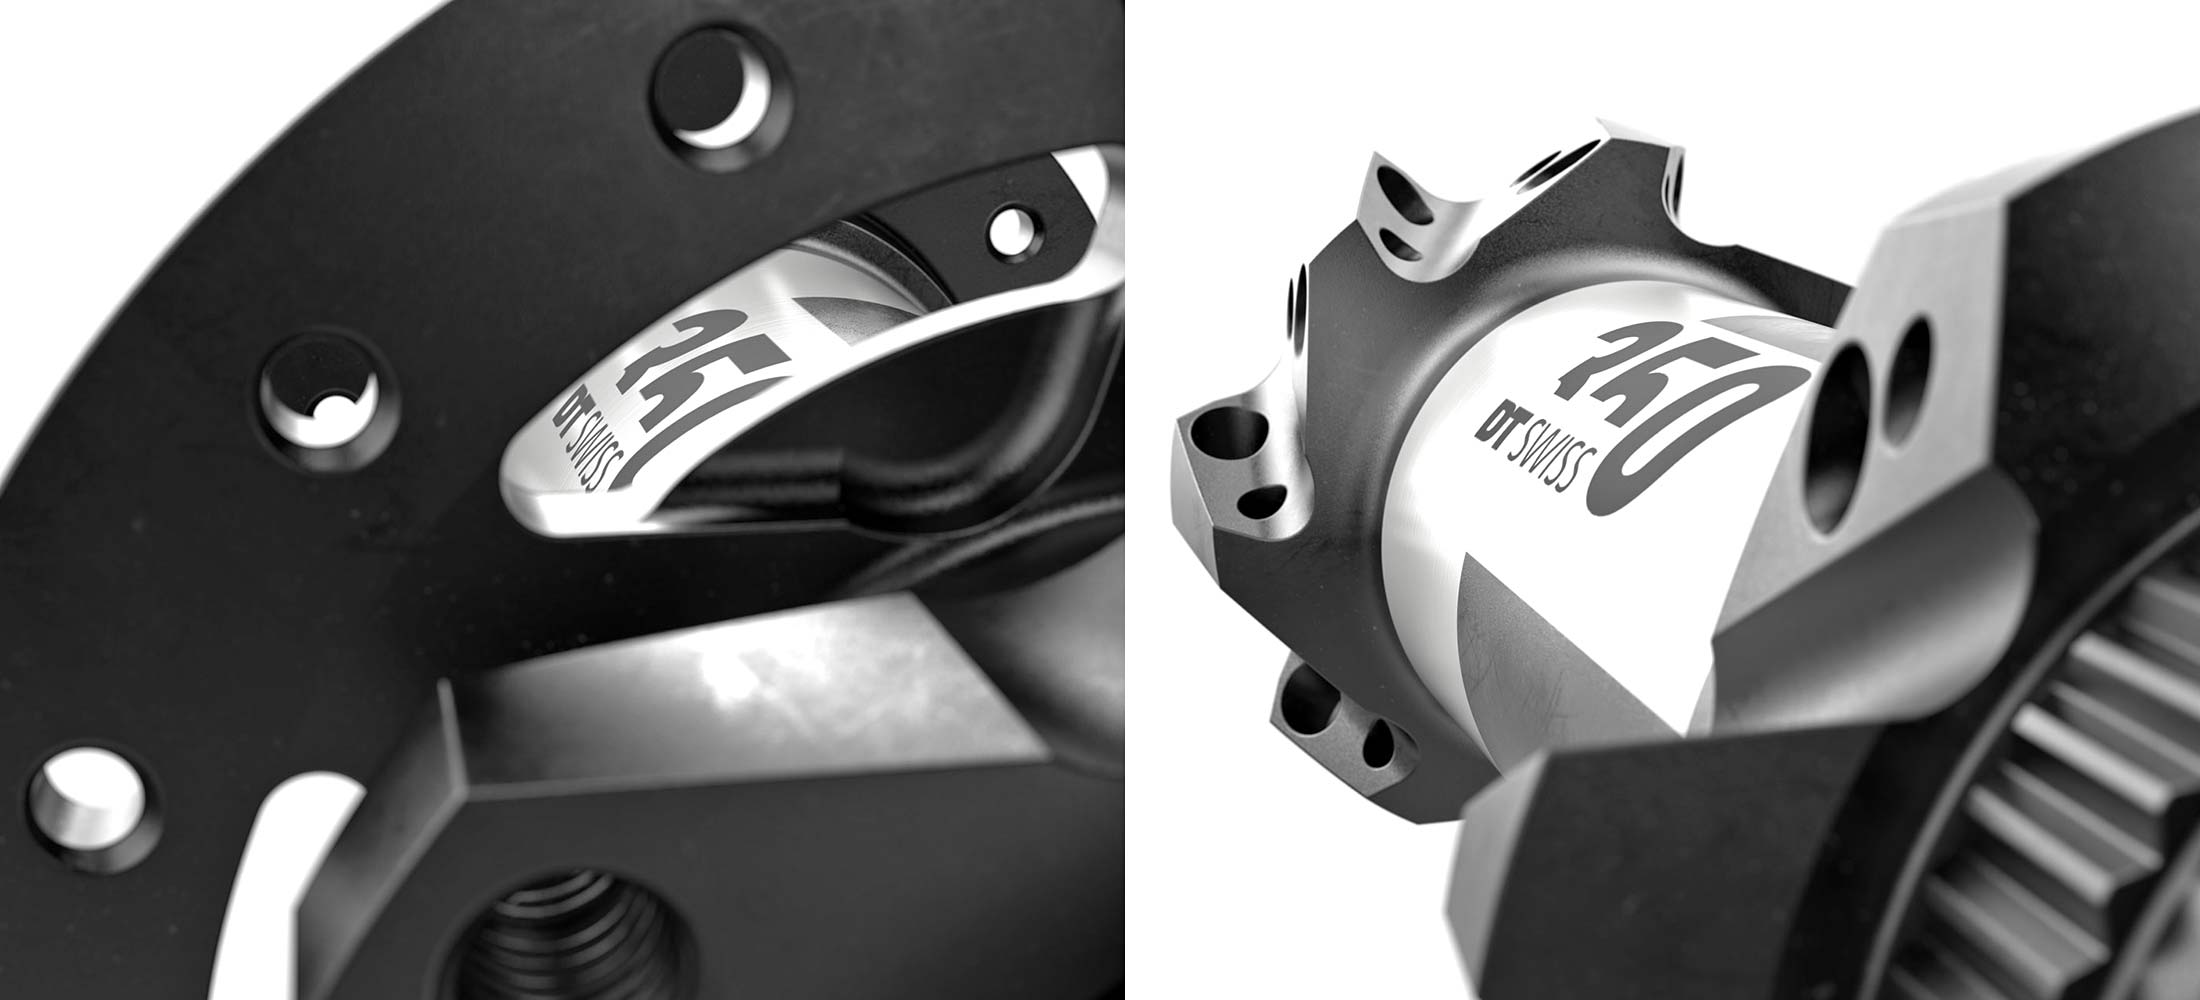 New DT Swiss 350 MTB hubs, lighter faster still affordable 36T Star Ratchet, new machining